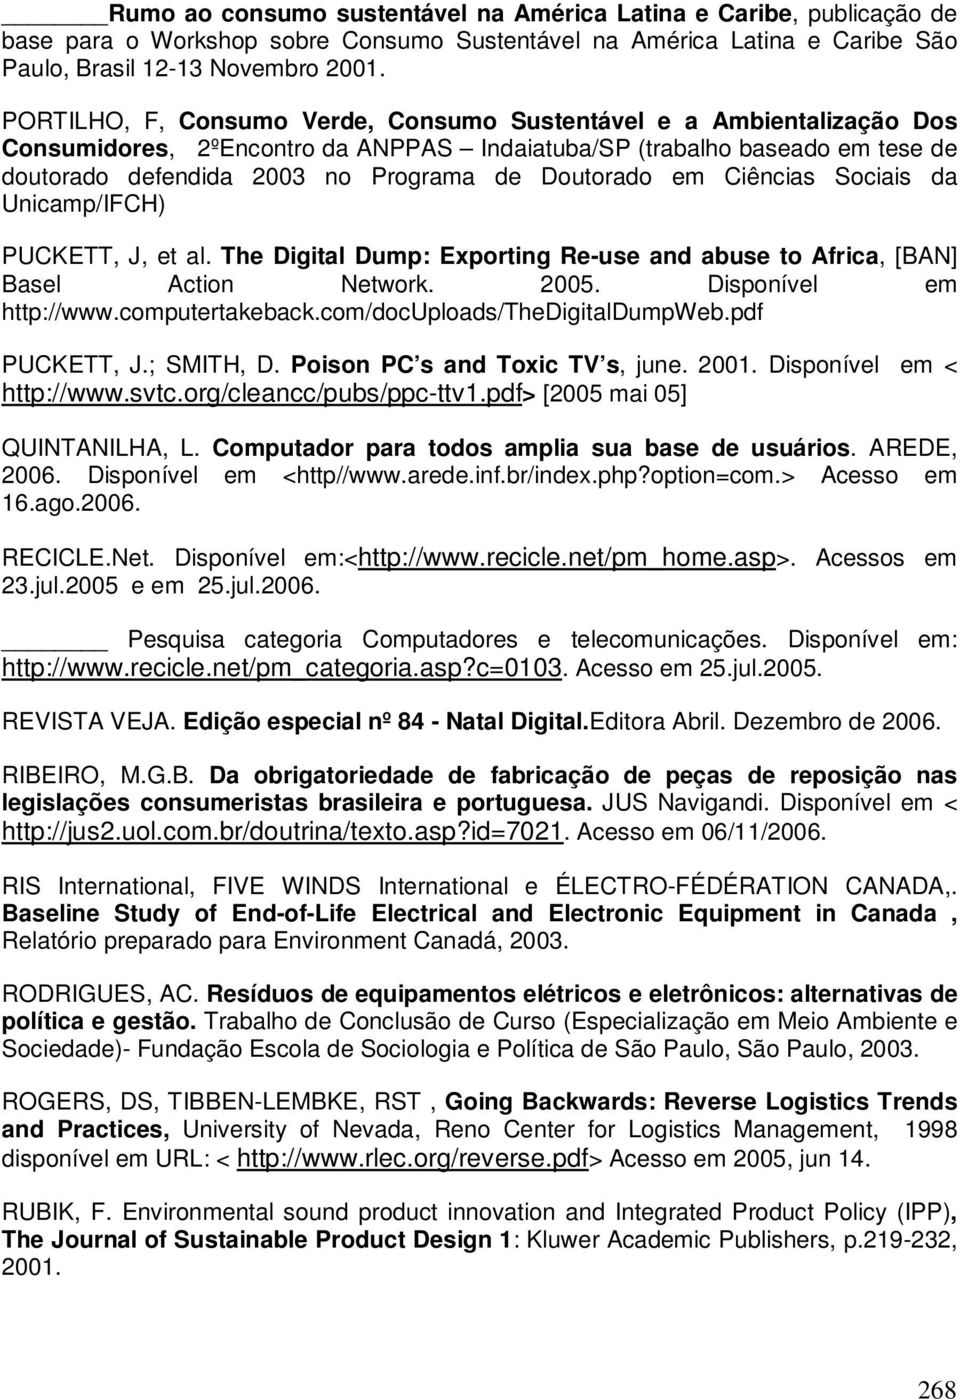 em Ciências Sociais da Unicamp/IFCH) PUCKETT, J, et al. The Digital Dump: Exporting Re-use and abuse to Africa, [BAN] Basel Action Network. 2005. Disponível em http://www.computertakeback.